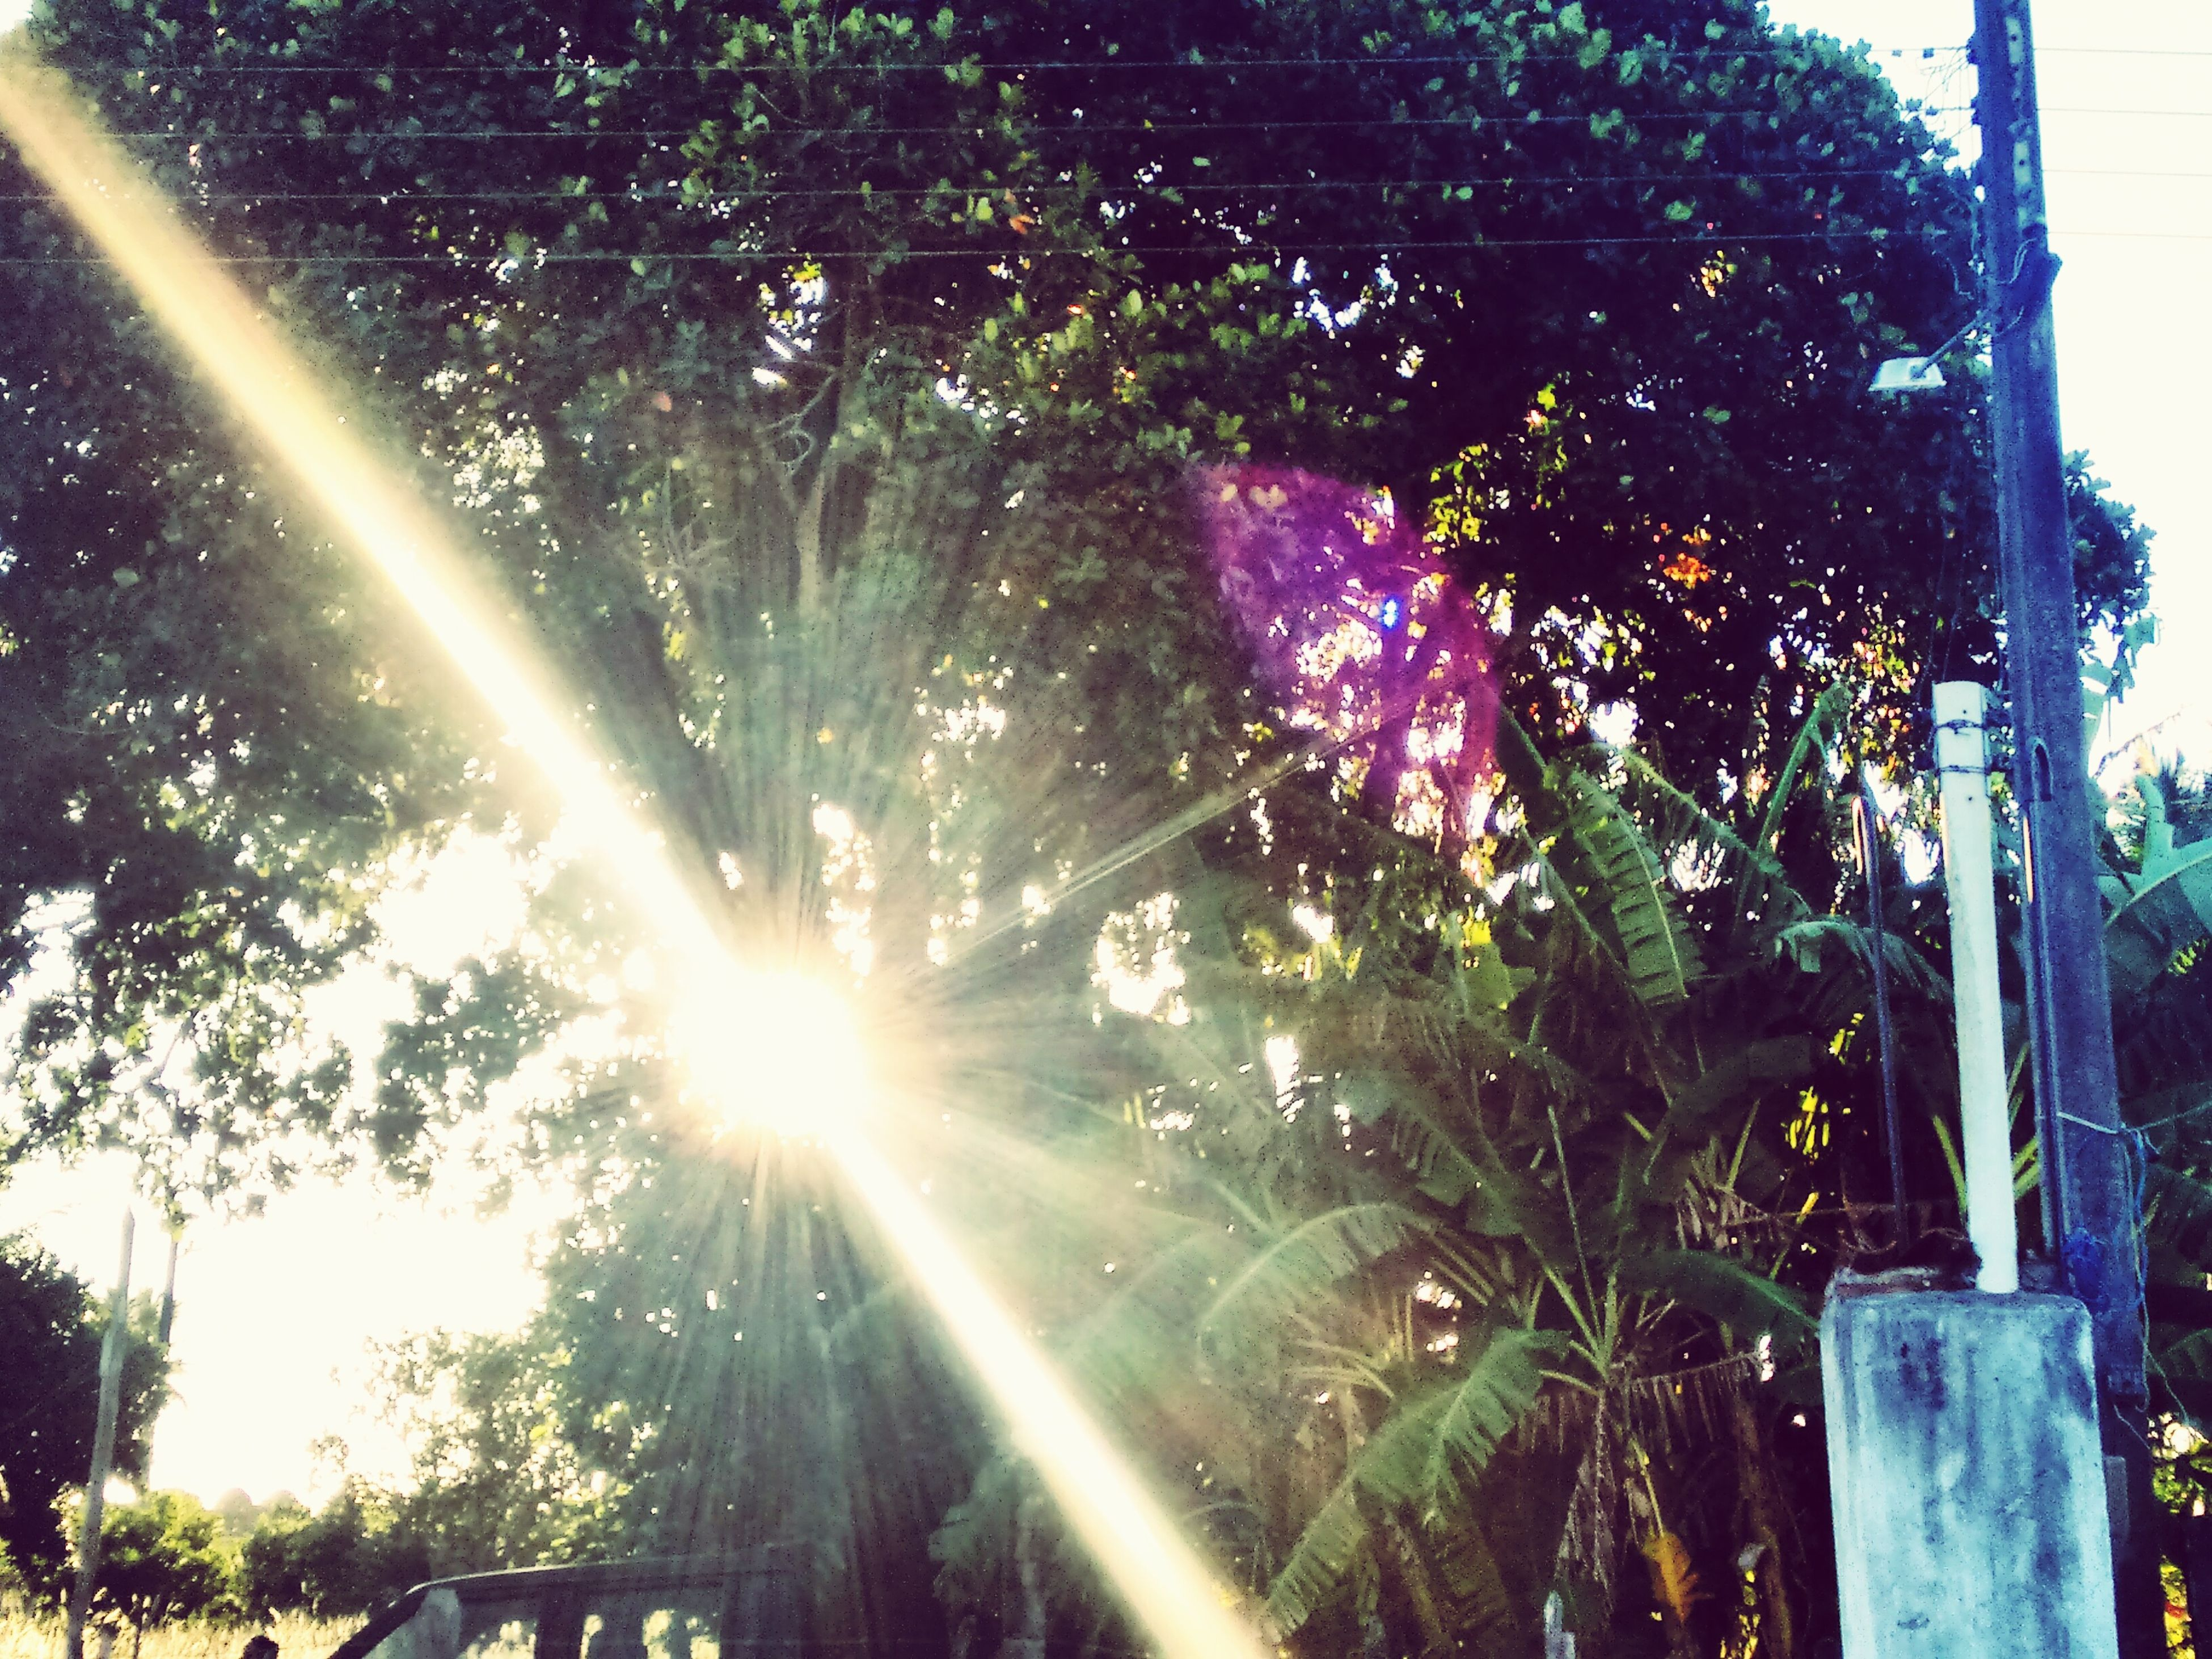 sunbeam, tree, sunlight, lens flare, sun, growth, low angle view, nature, plant, day, outdoors, beauty in nature, sunny, no people, park - man made space, flower, bright, built structure, front or back yard, close-up